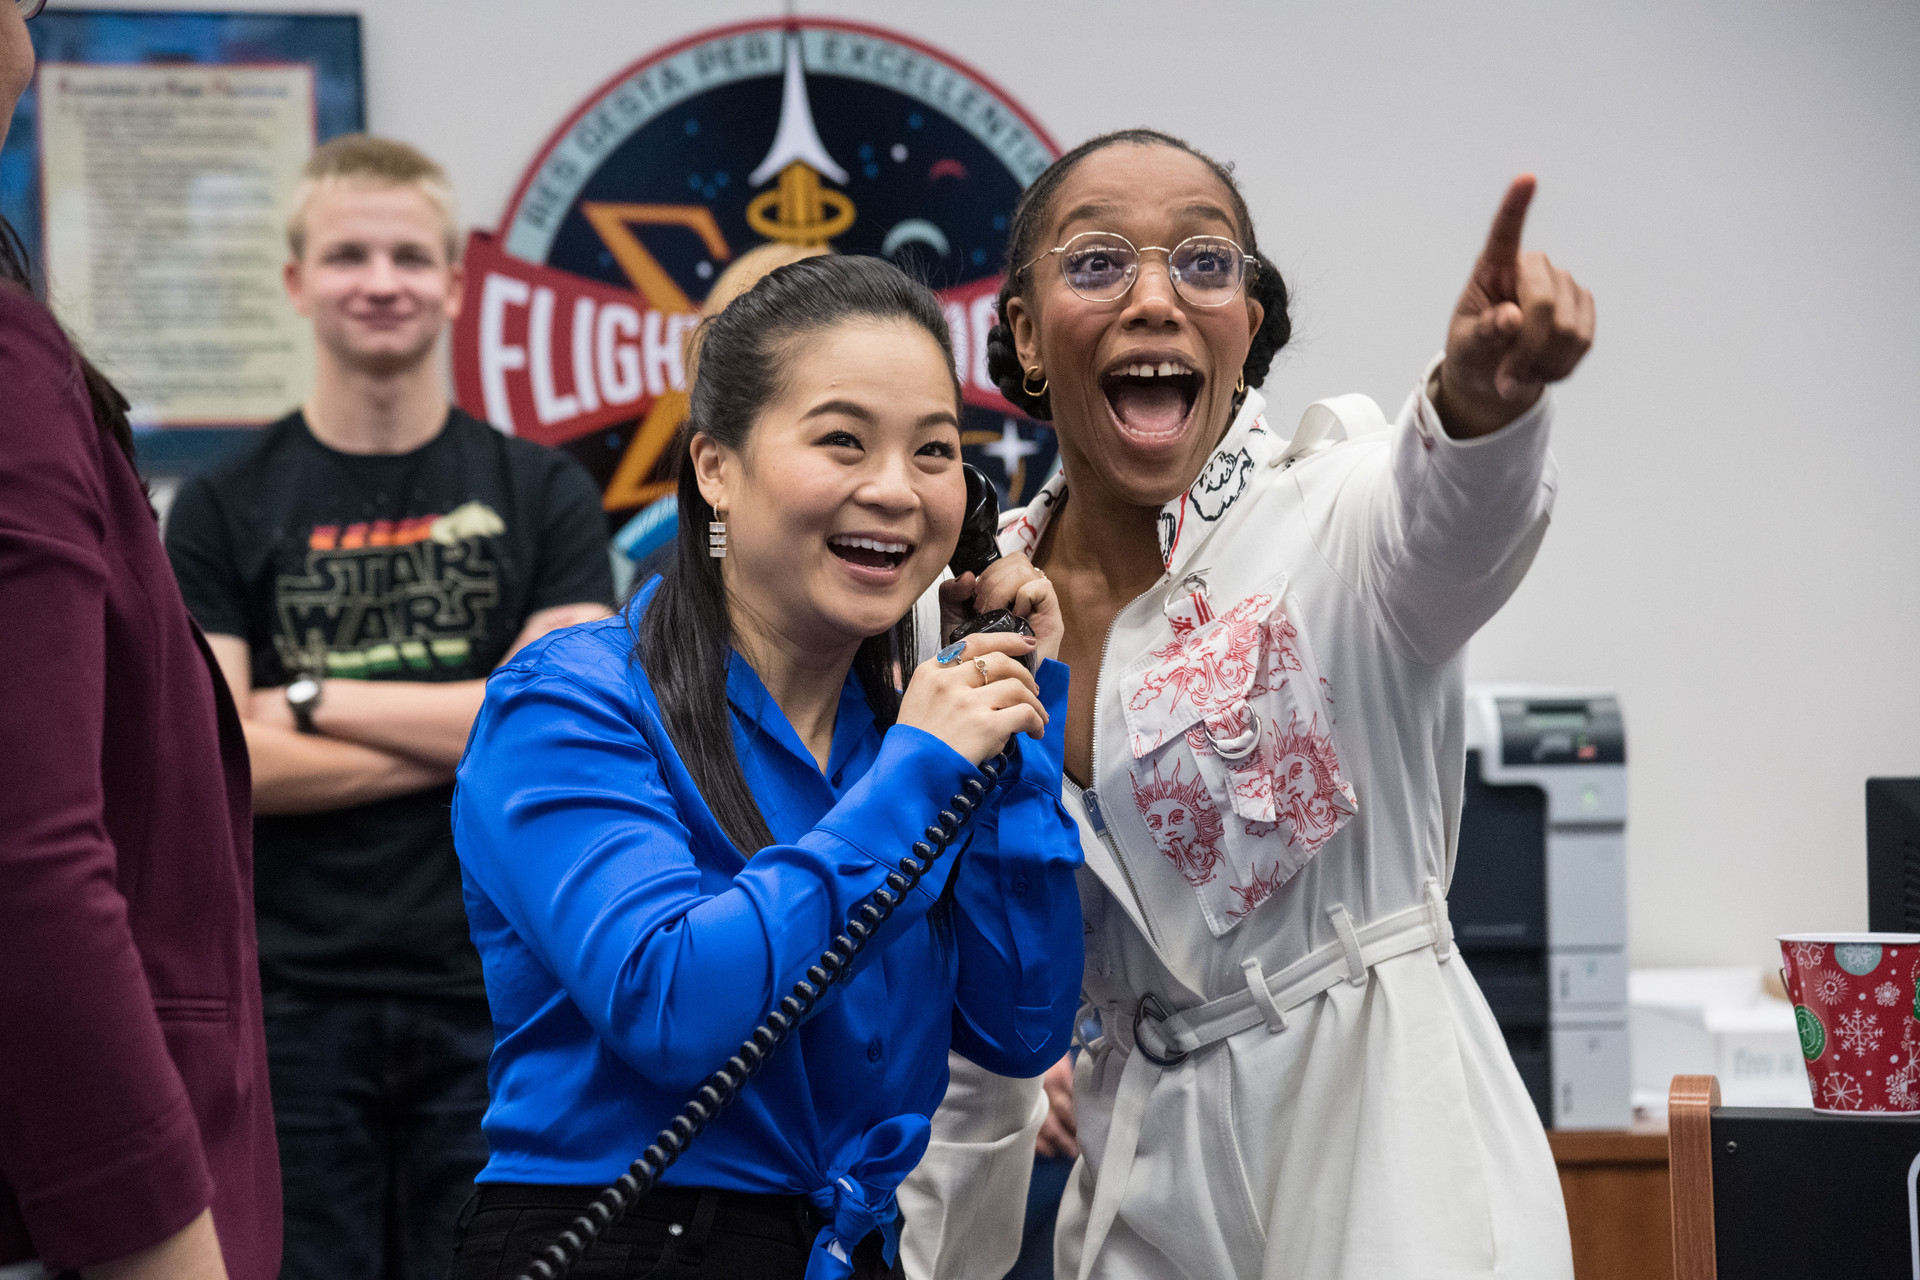 Kelly Marie Tran and Naomi Ackie, from Star Wars: The Rise of Skywalker, were very excited to speak with the crew on board the International Space Center from NASA's Mission Control Center in Johnson Space Center.